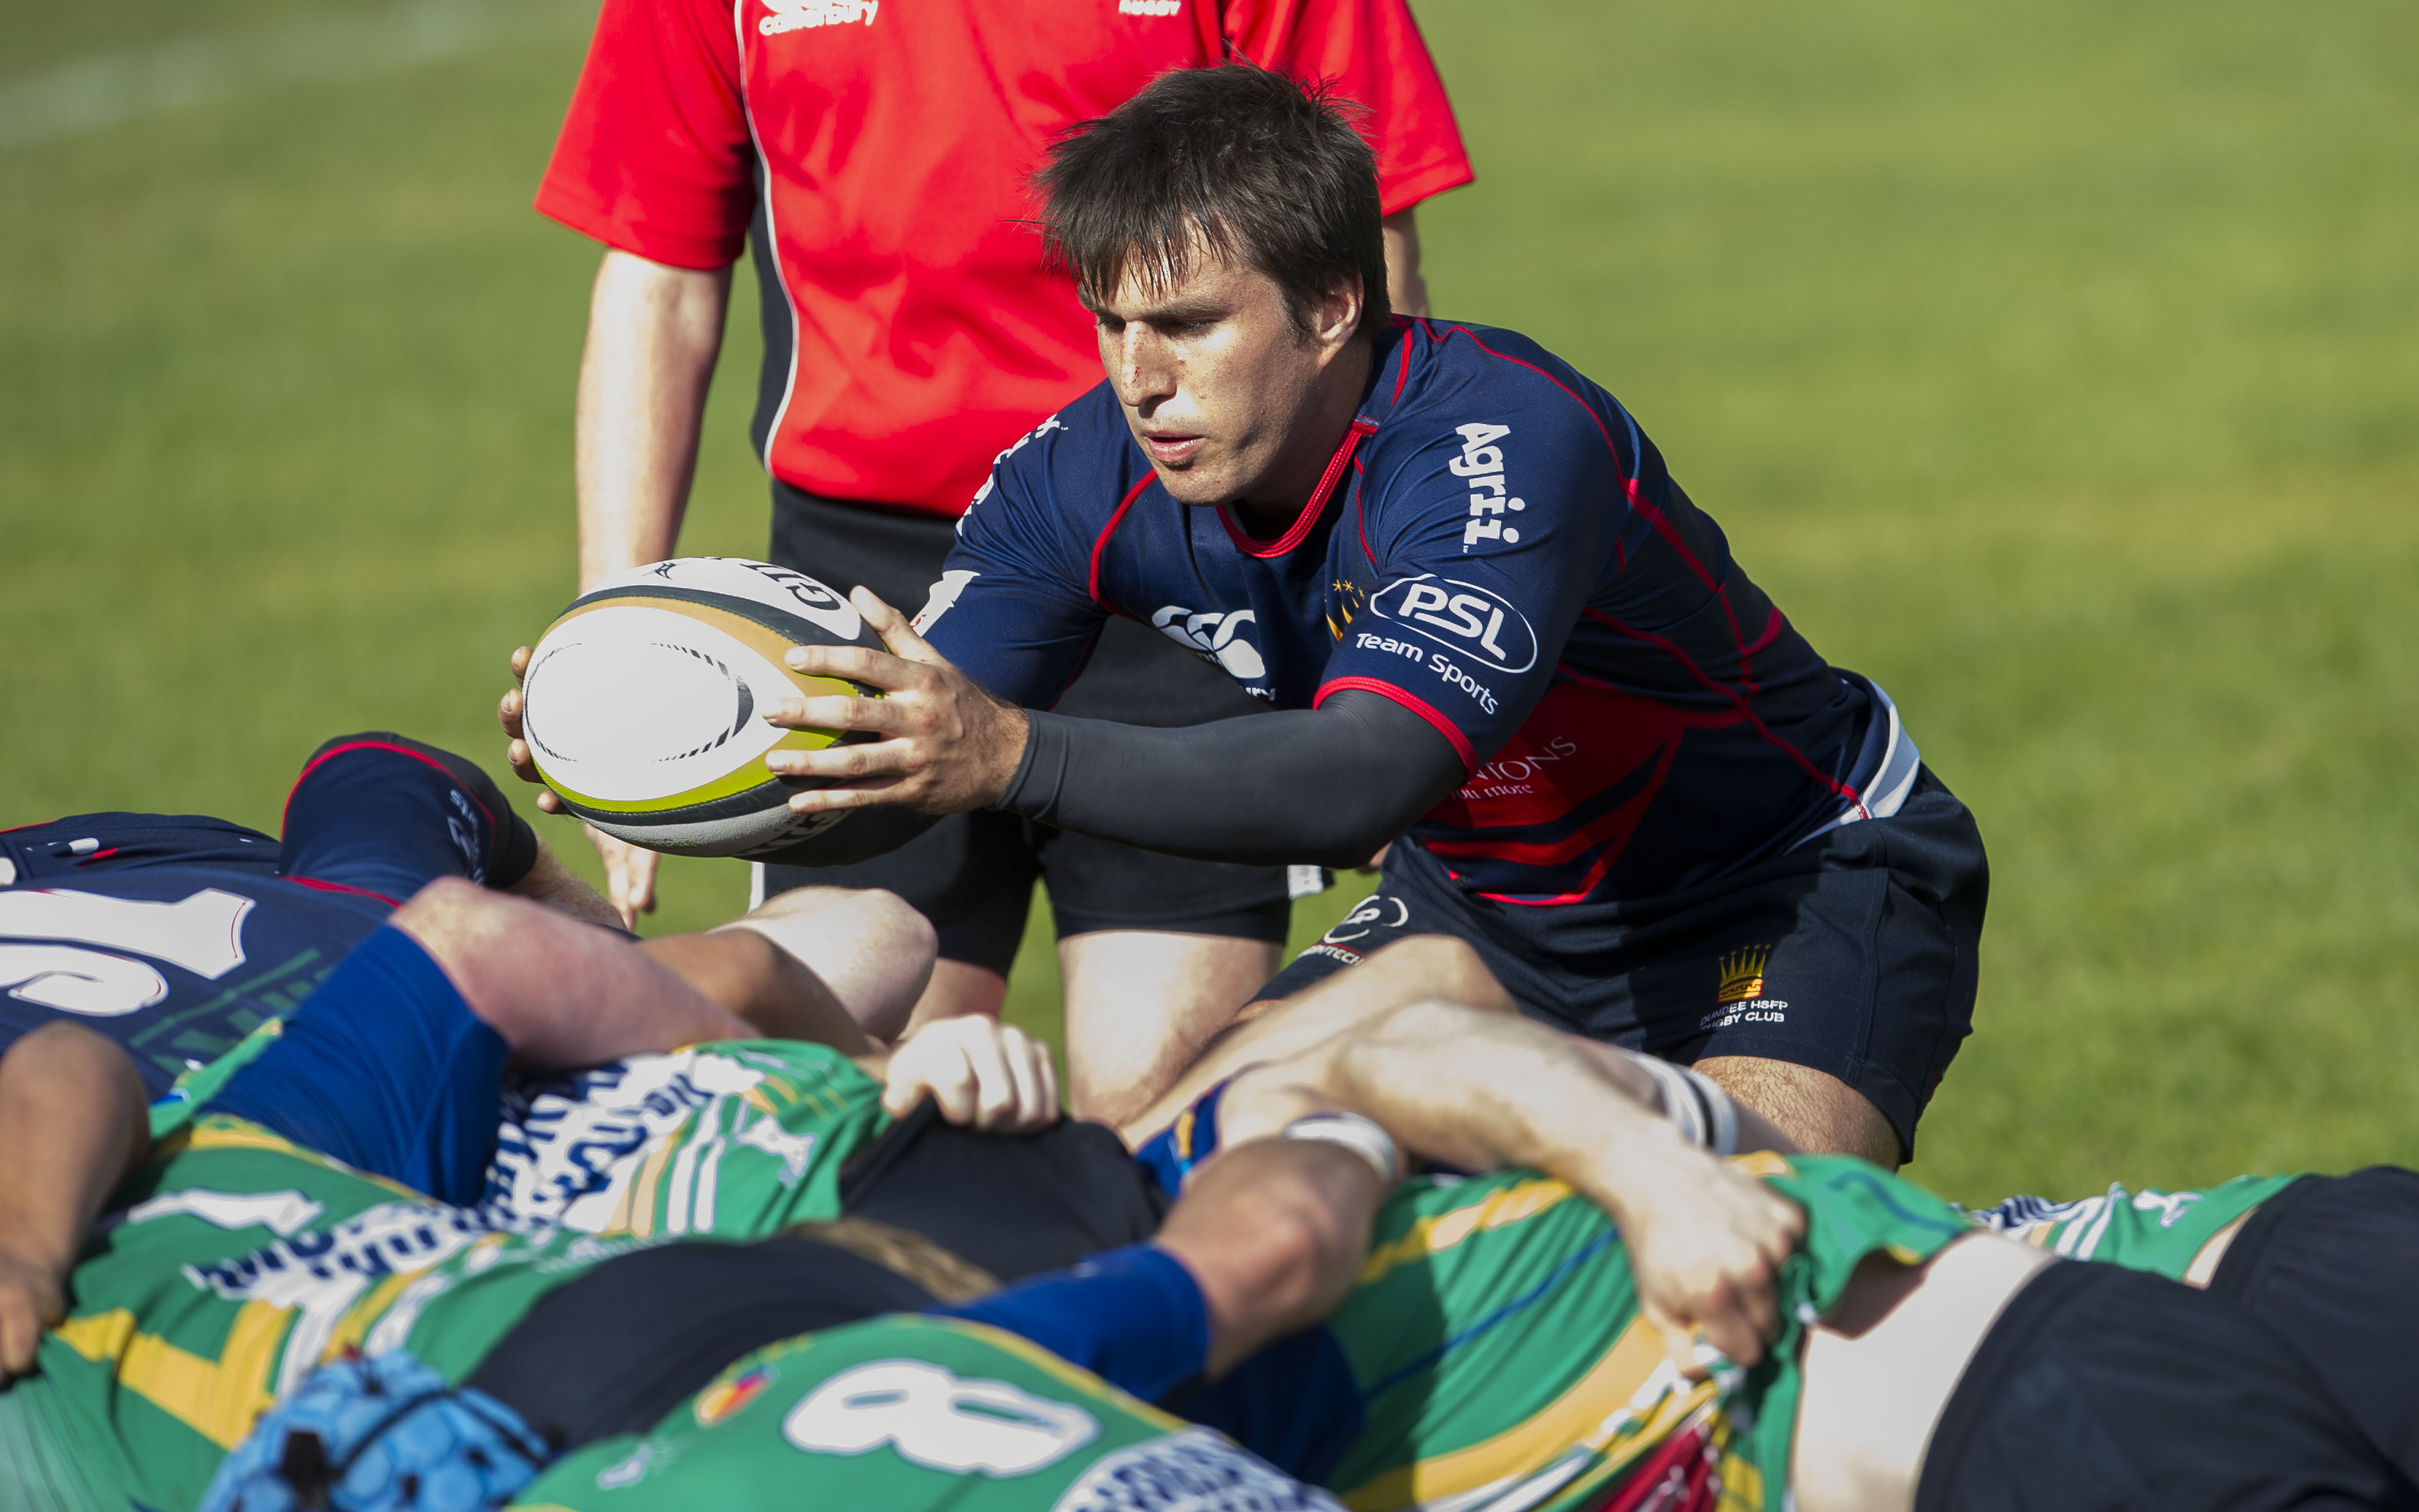 Dundee High Rugby captain and scrum-half Andy Dymock.